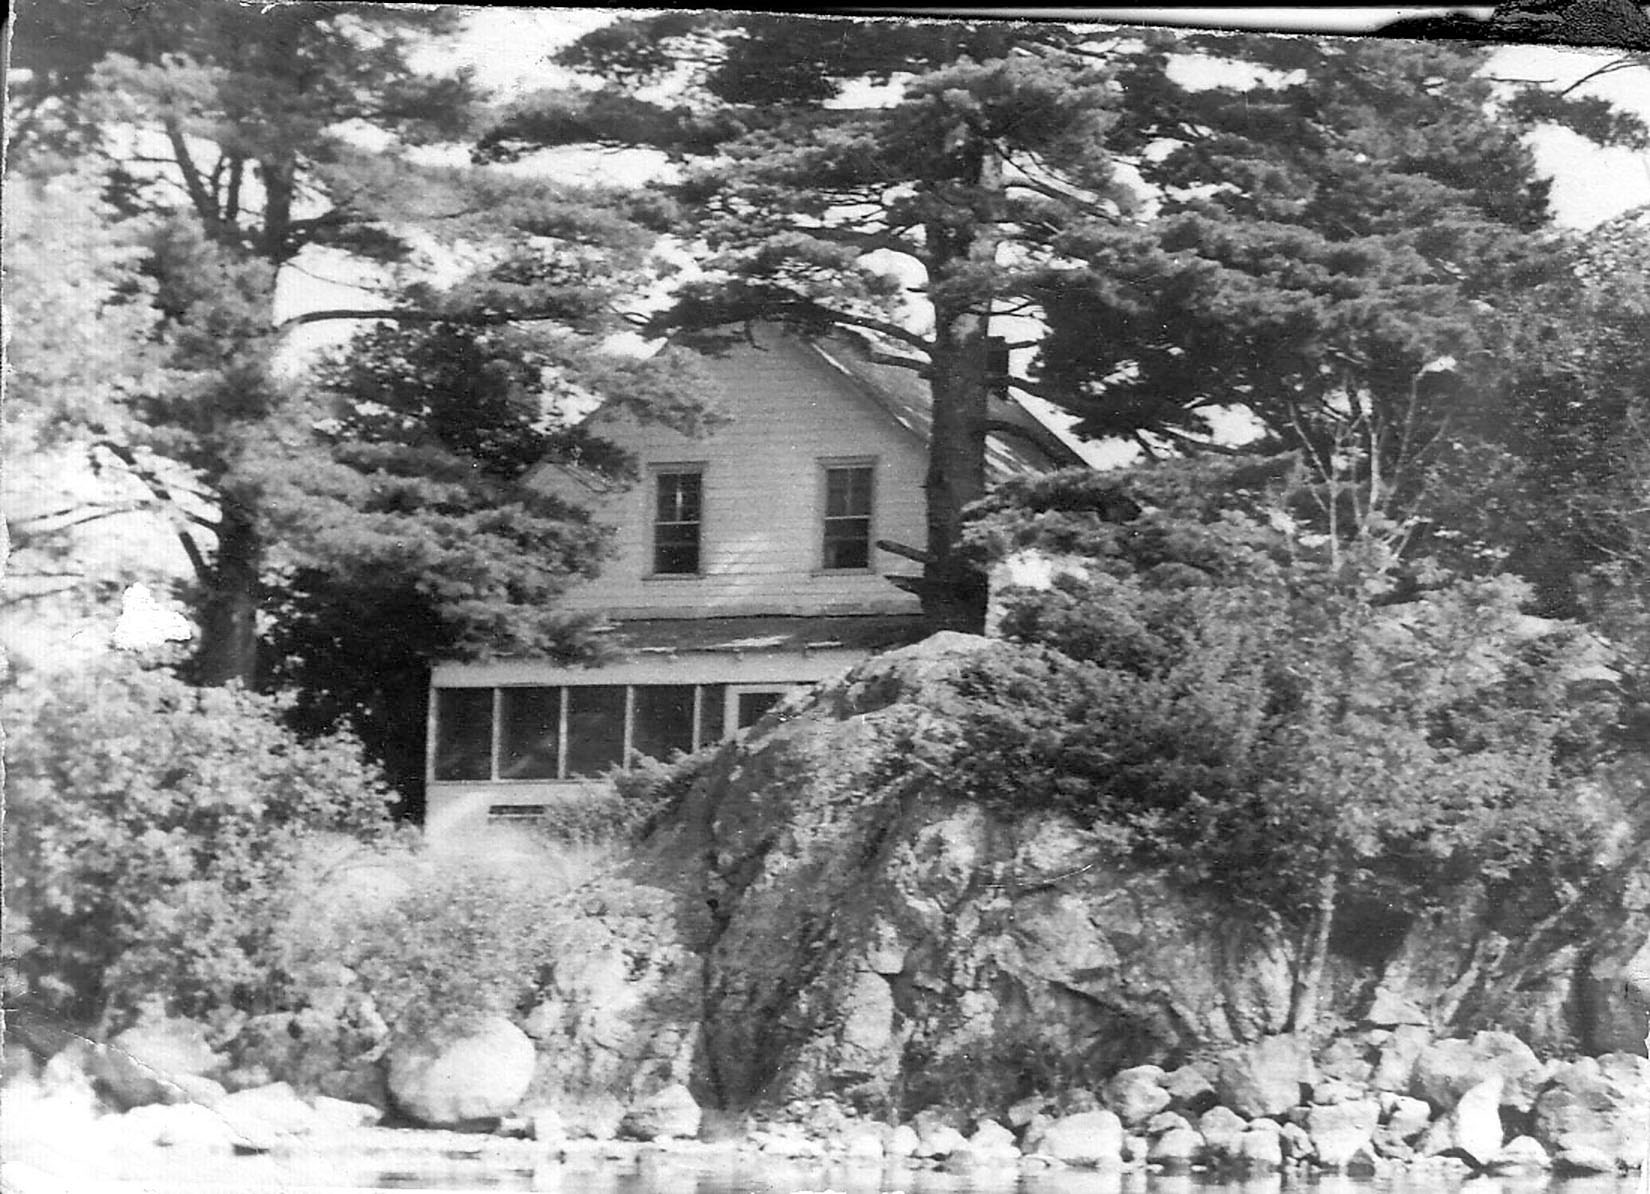 The unspoiled surroundings and Moira Lake's famous fishing brought affluent tourists from Illinois, Ohio, Pennsylvania and New York State, as well as occasional Ontario guests, to Pitts' Landing. Photo courtesy Ketcheson Family